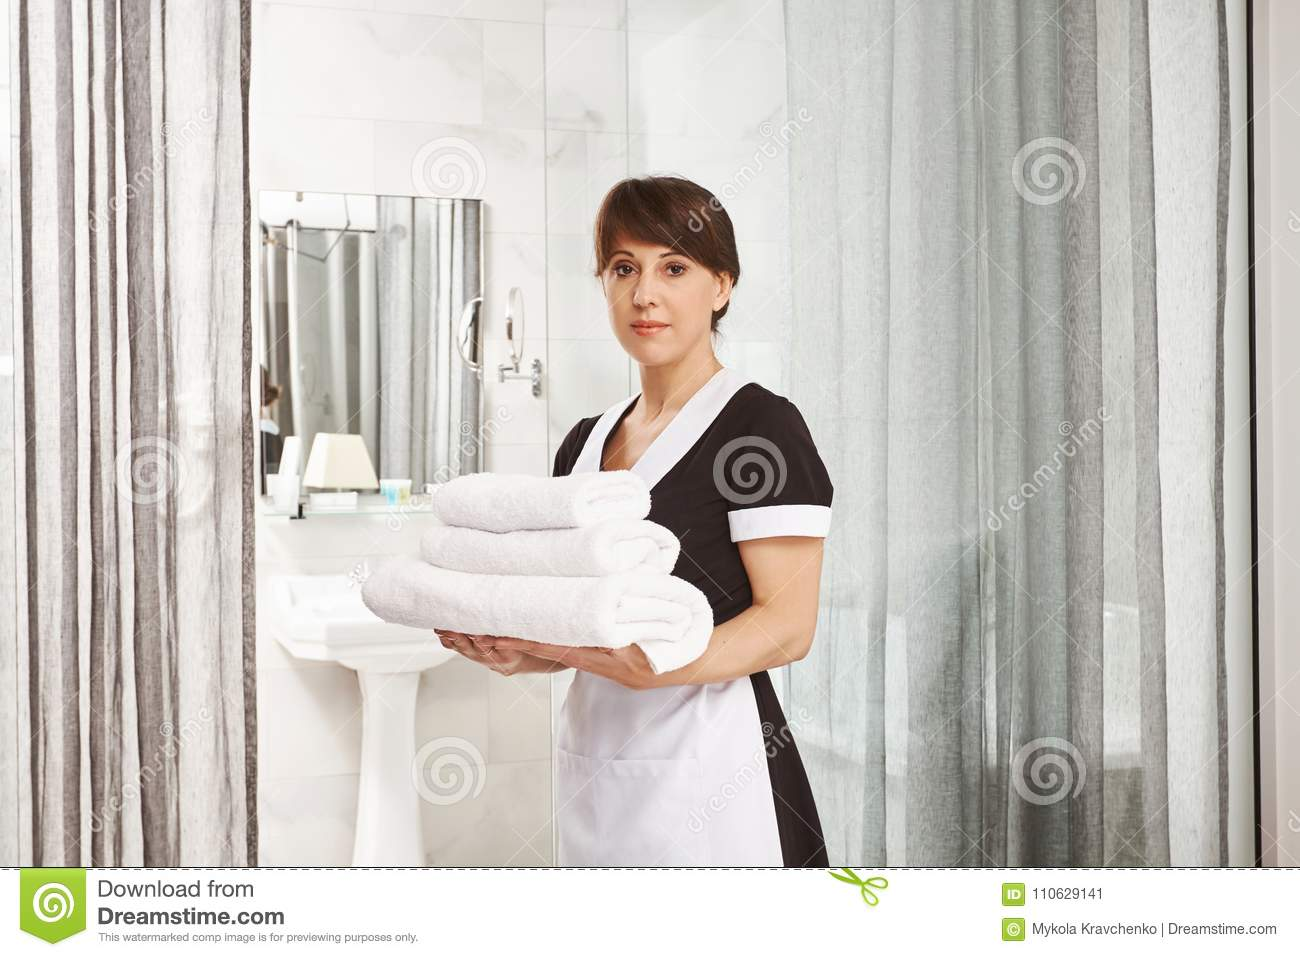 Sir, I will put extra towels in bathroom. Portrait of woman in maid uniform standing with white hotel towels near door